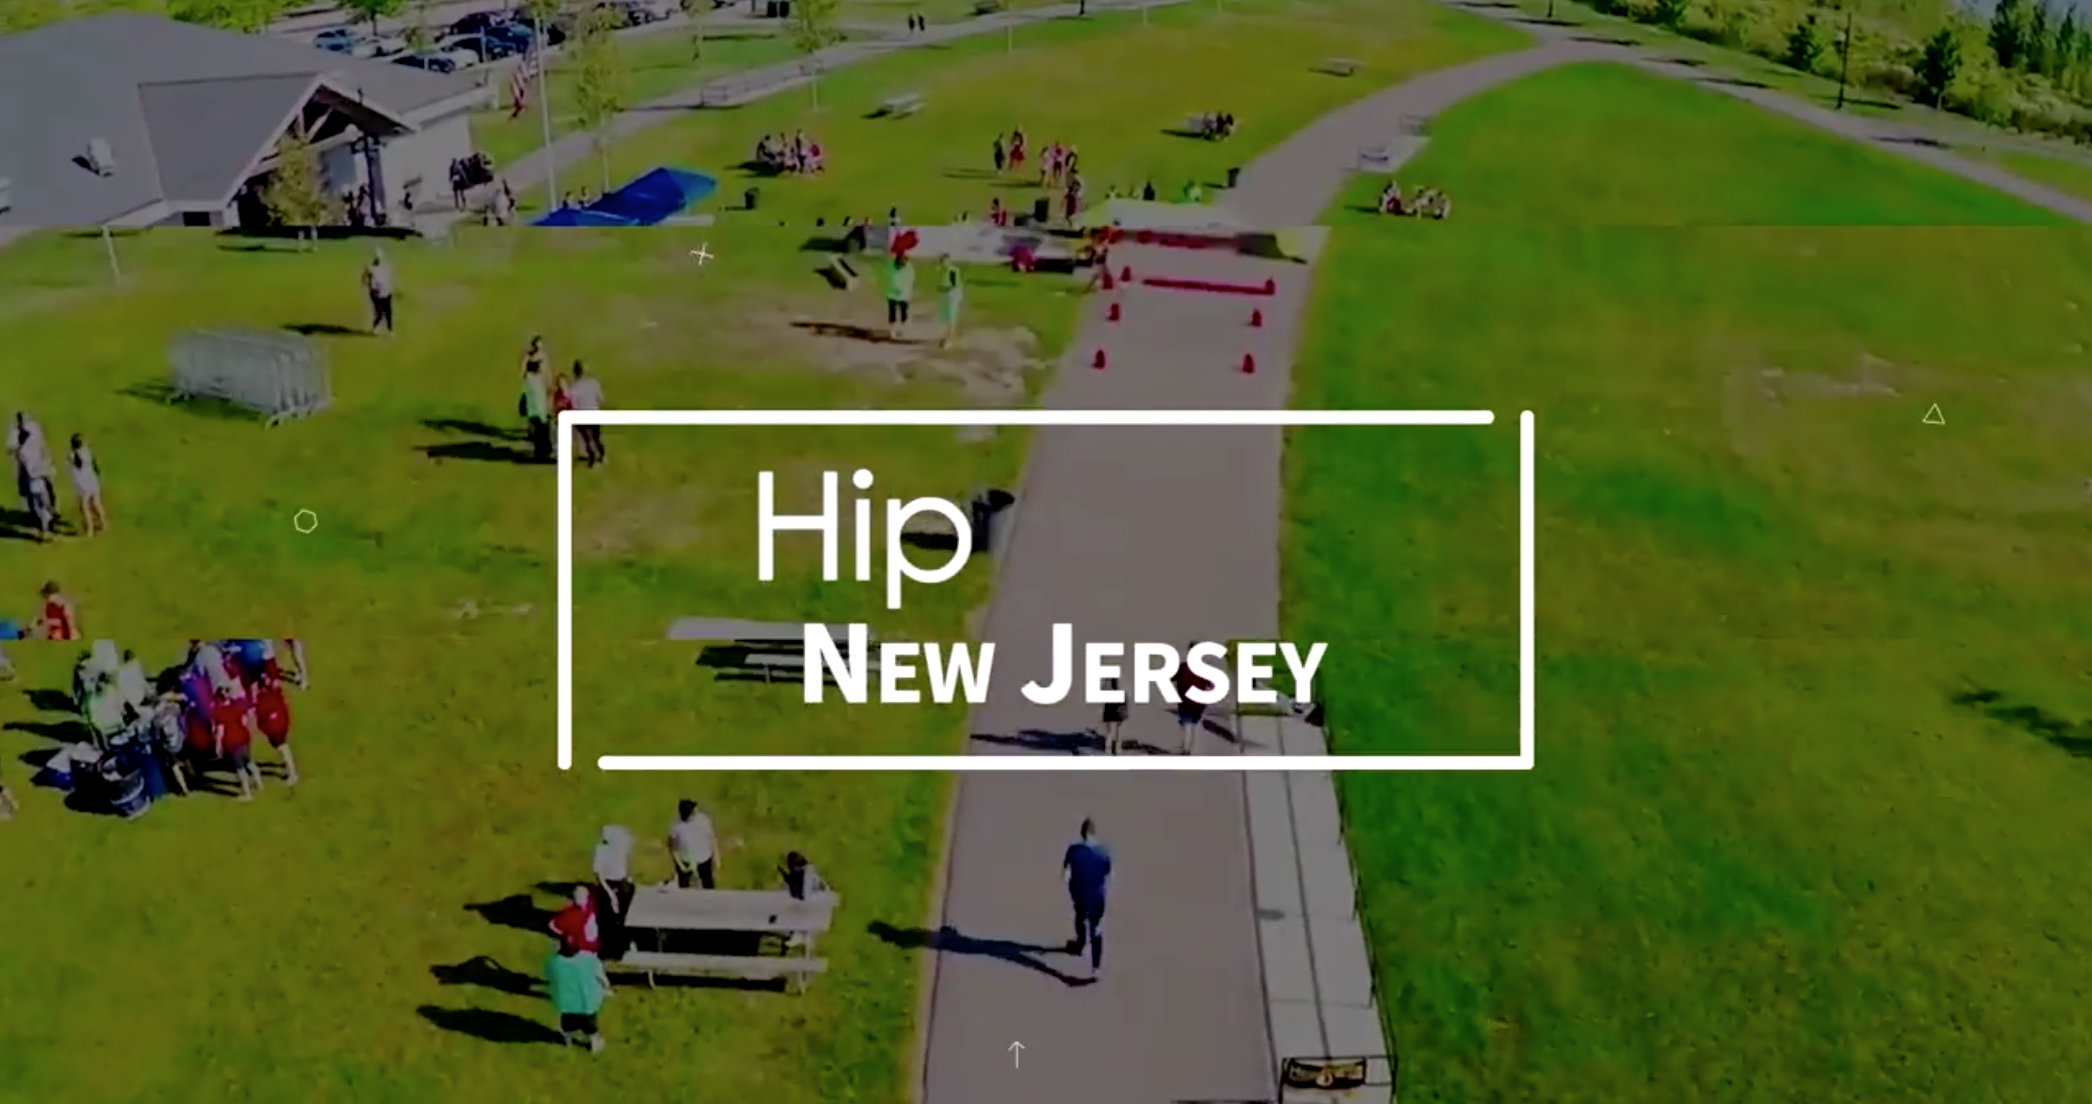 Watch Hip New Jersey on Hometowne Television